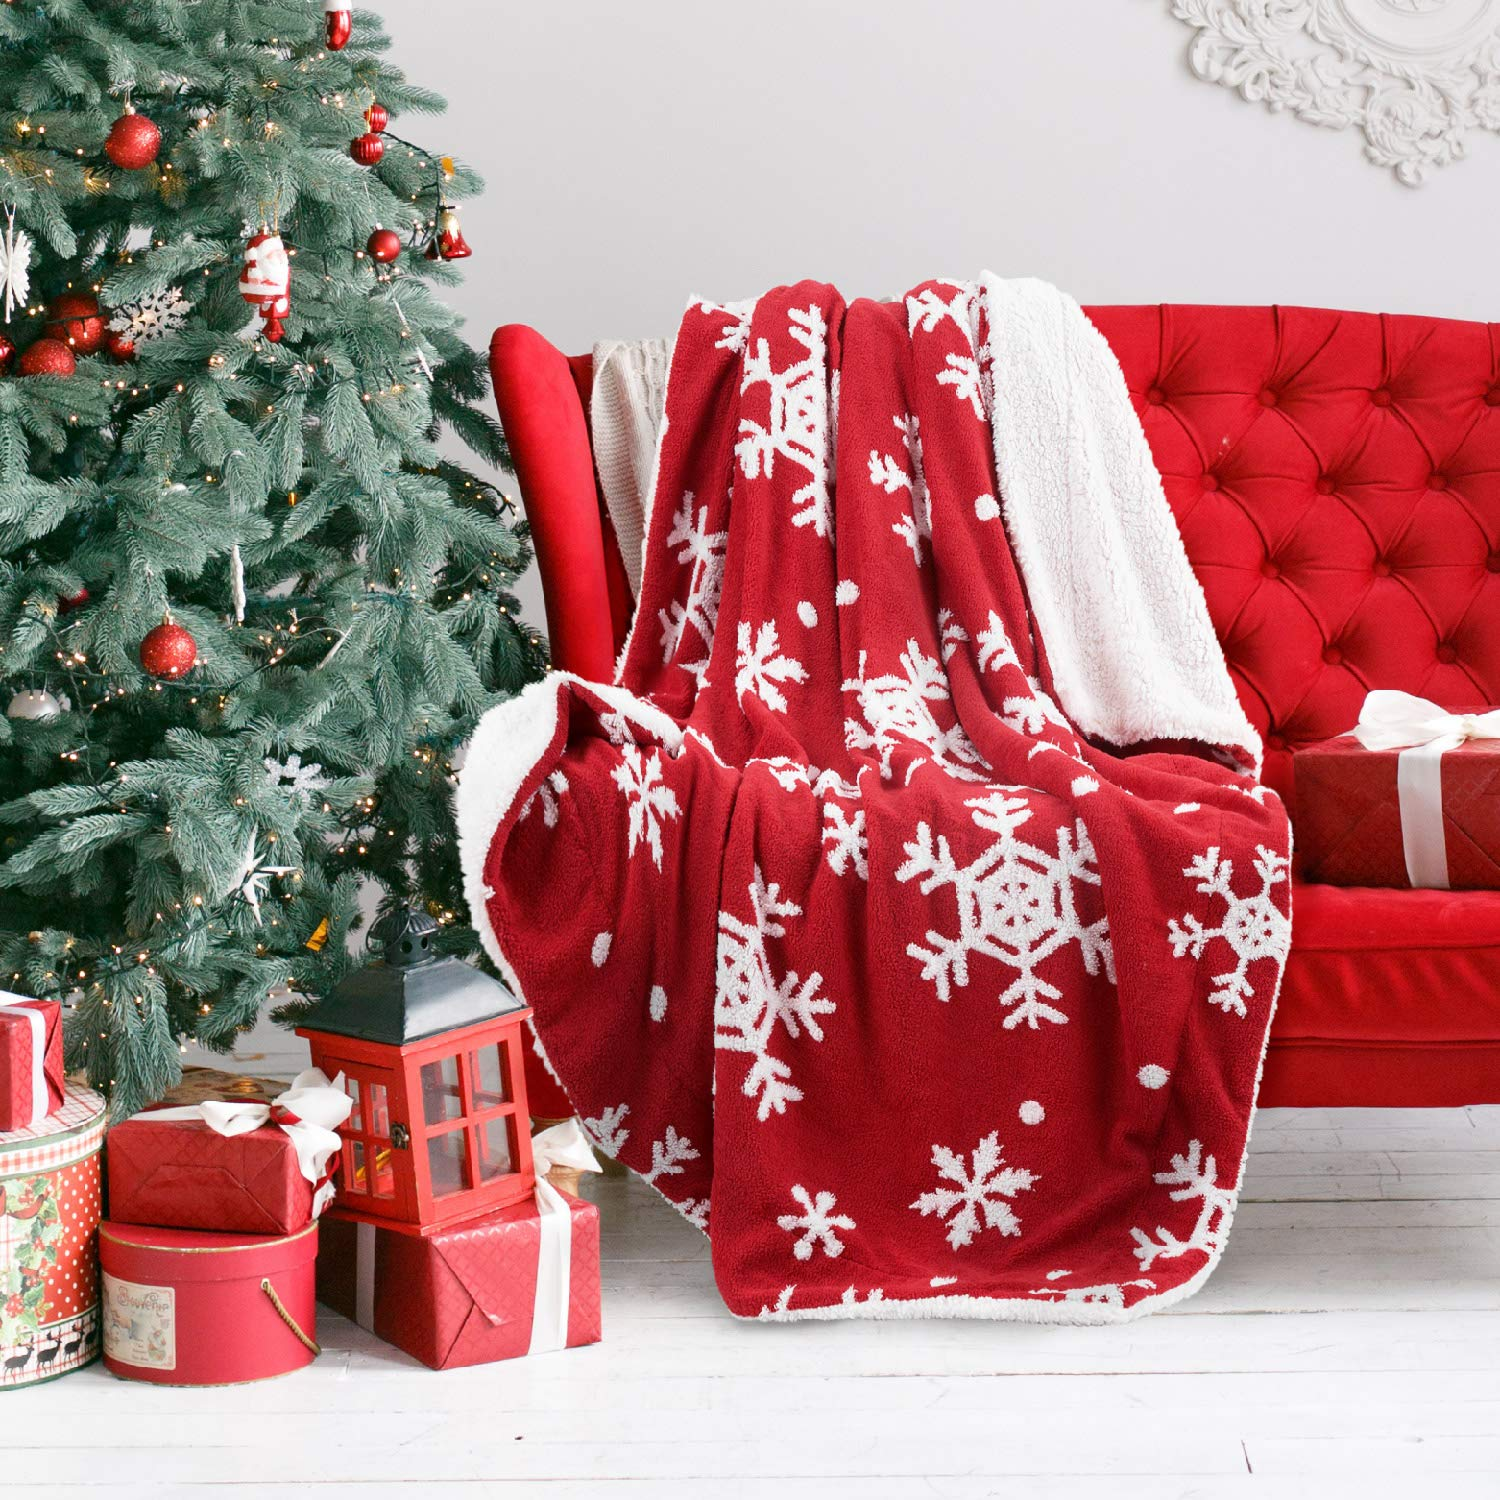 Bedsure Christmas Holiday Sherpa Fleece Throw Blanket Snowflake Red and White Fuzzy Warm Throws for Winter Bedding, Couch,Sofa and Gift 50x60 inches